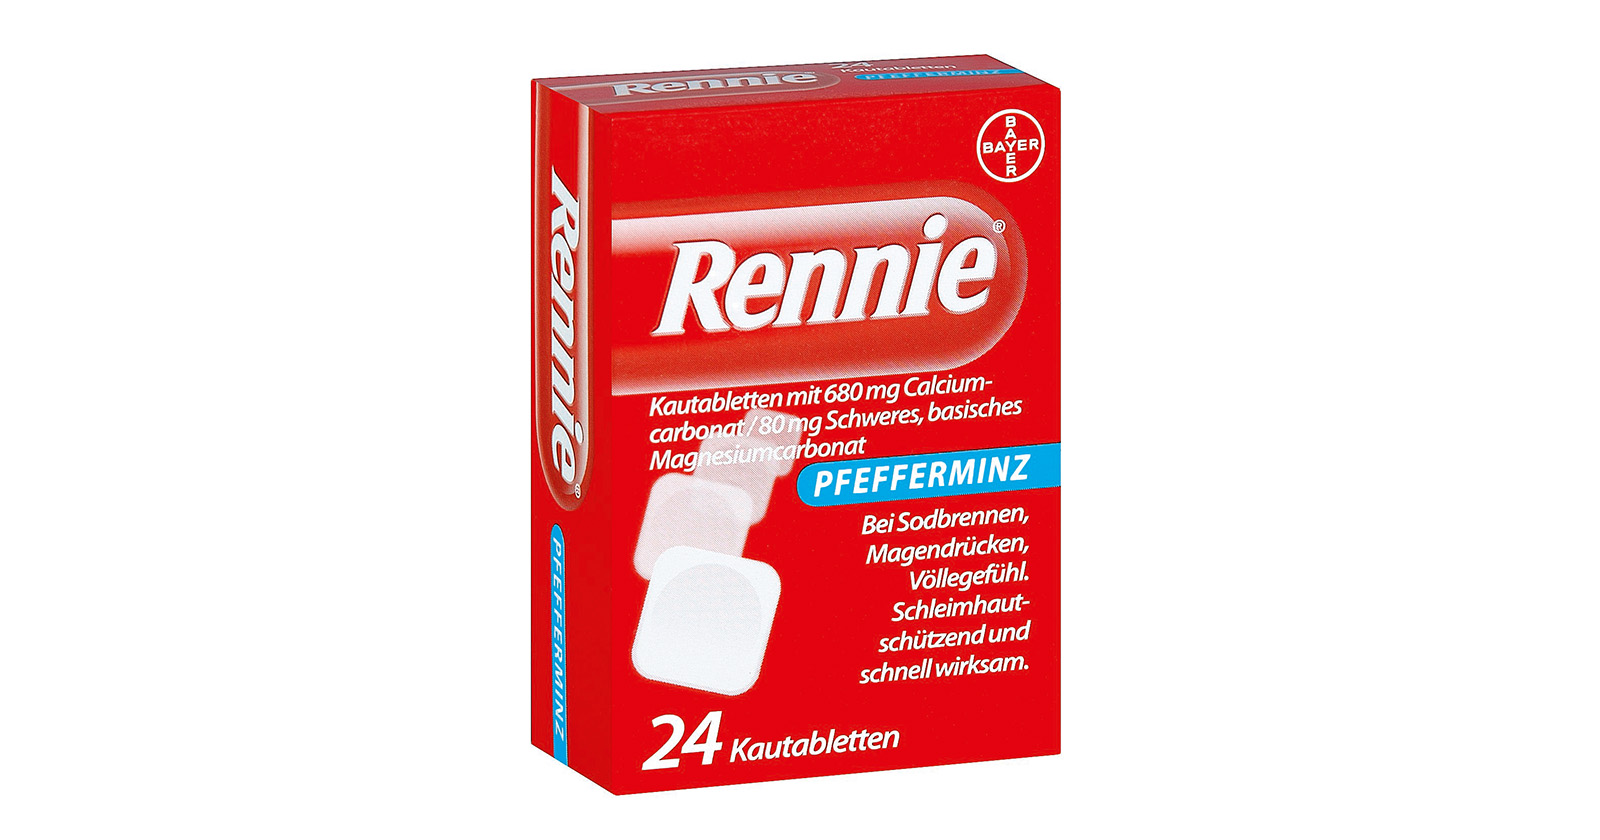 Packshot Rennie